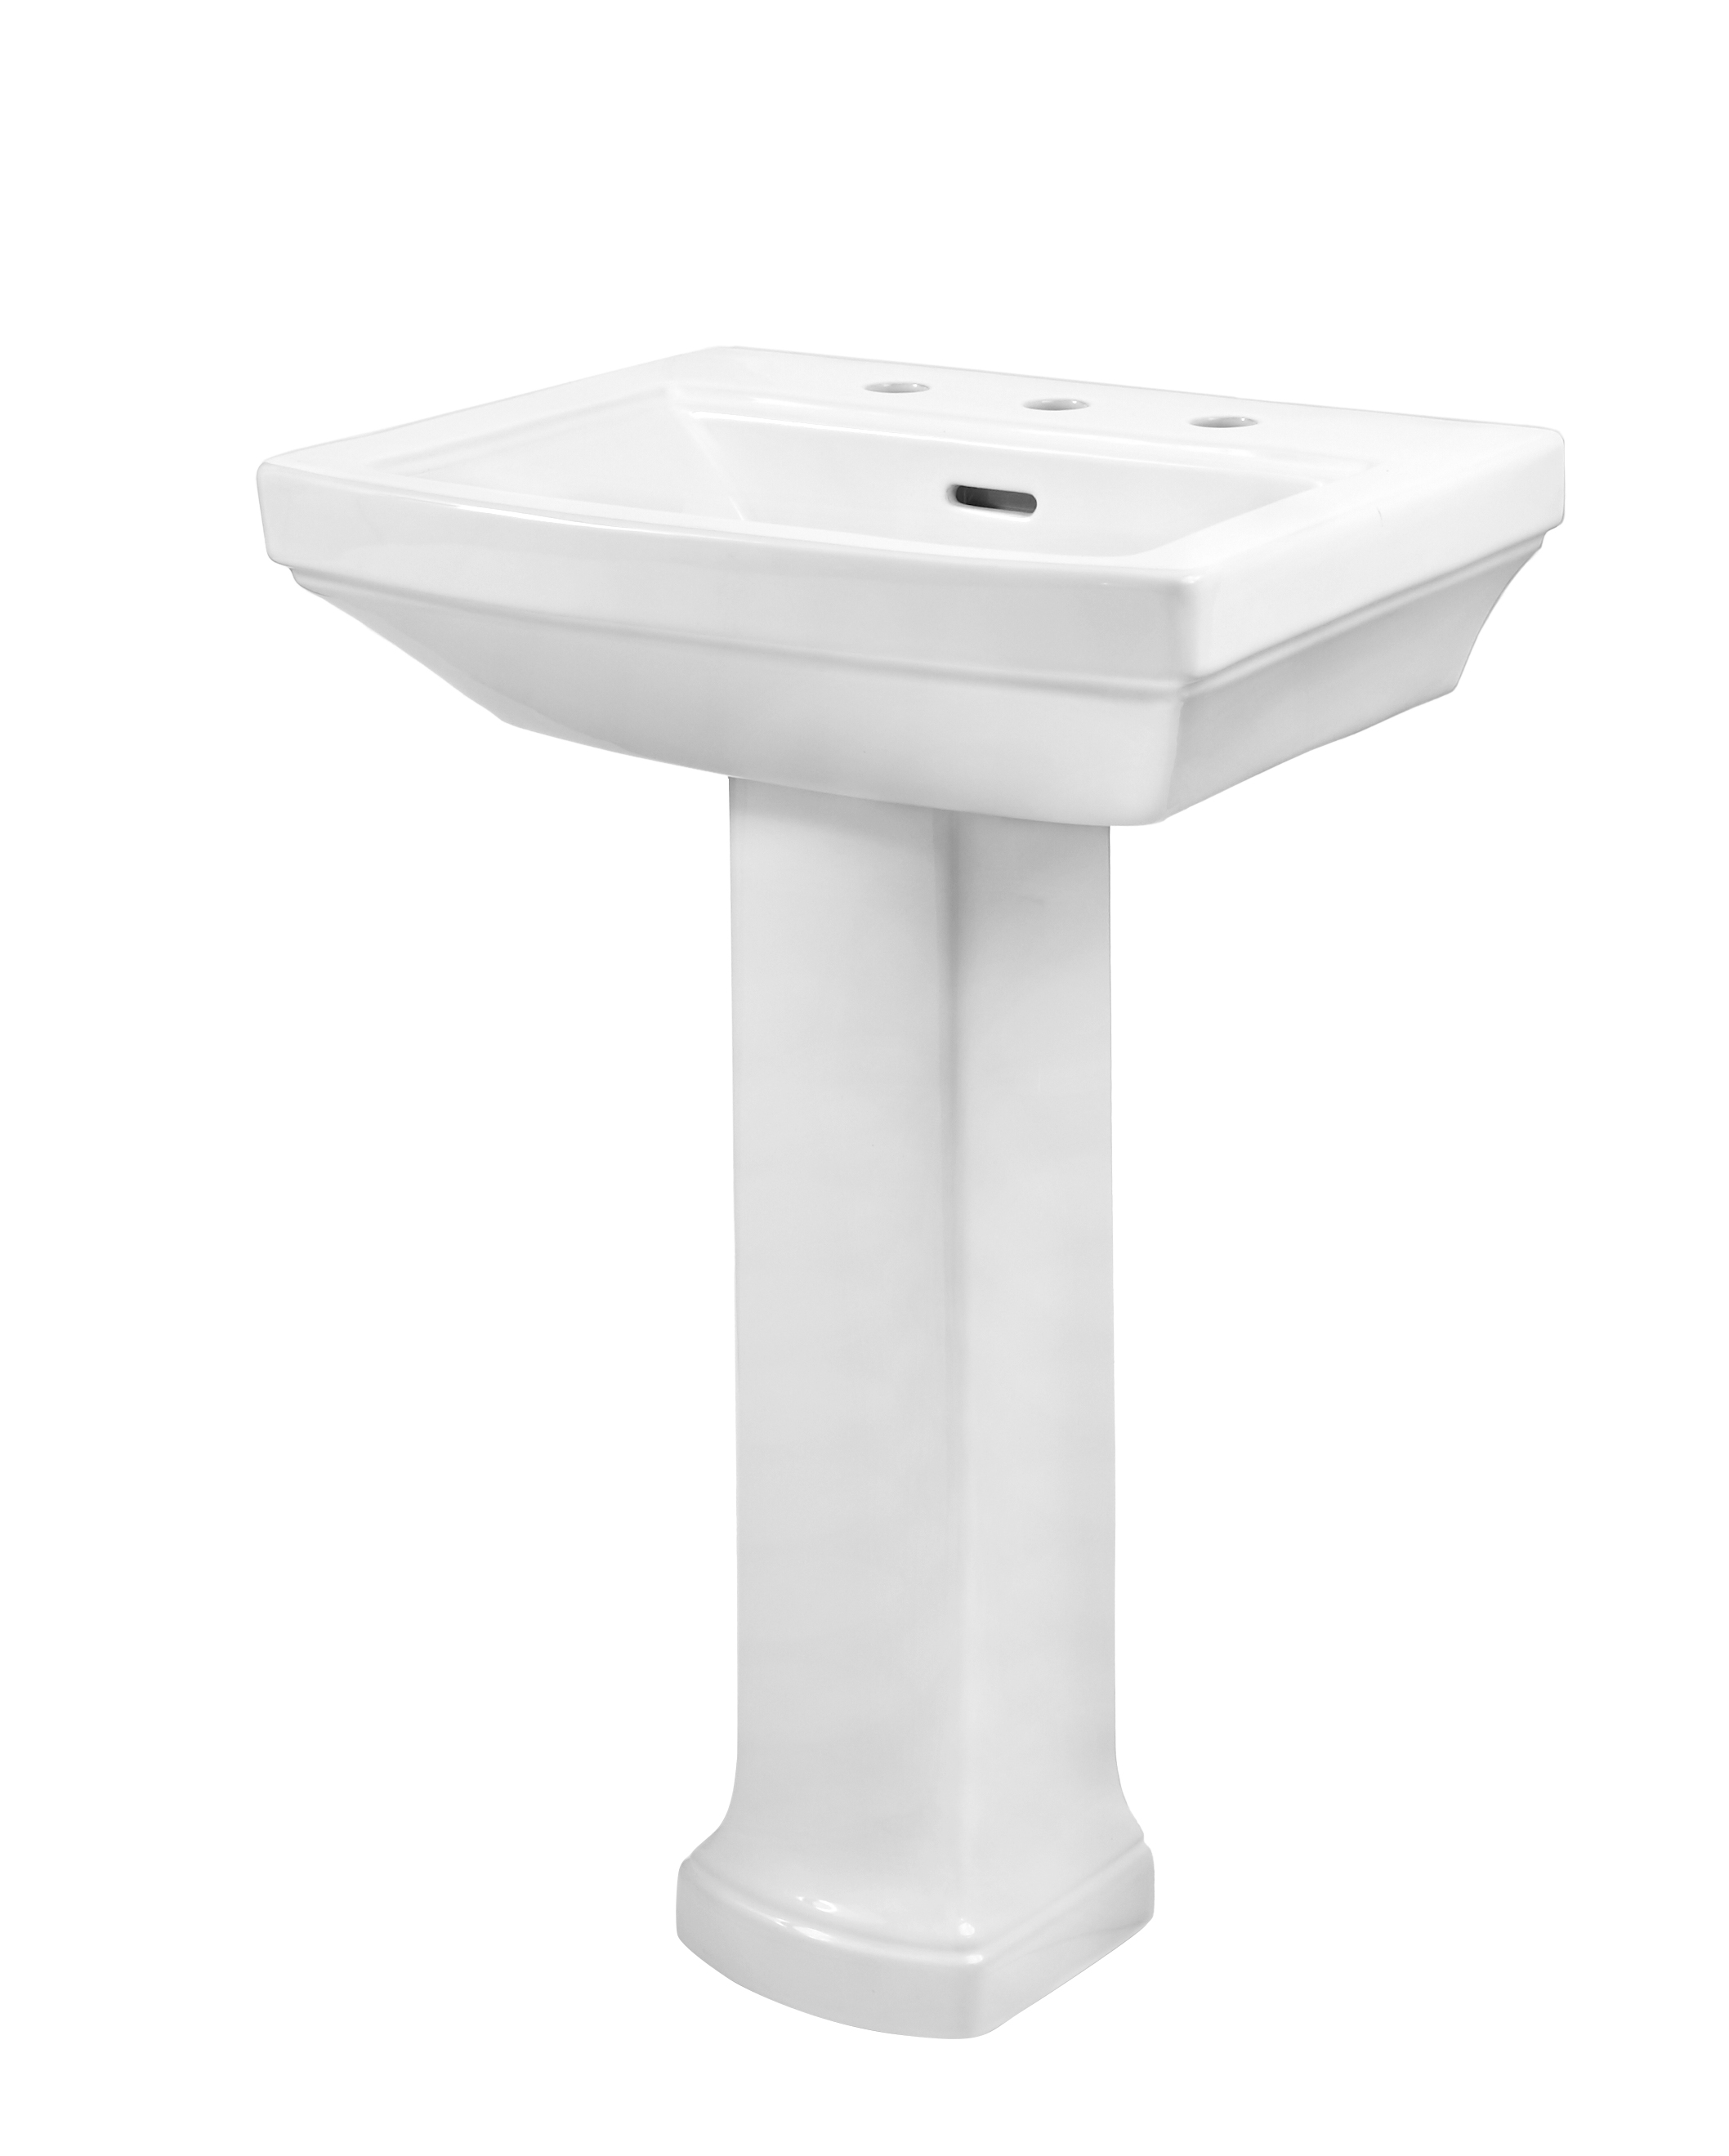 overstock rhtimmyontimecom pedestal bathroom for bathrooms tiny rhzpicscom small sinks wonderful sink veryll